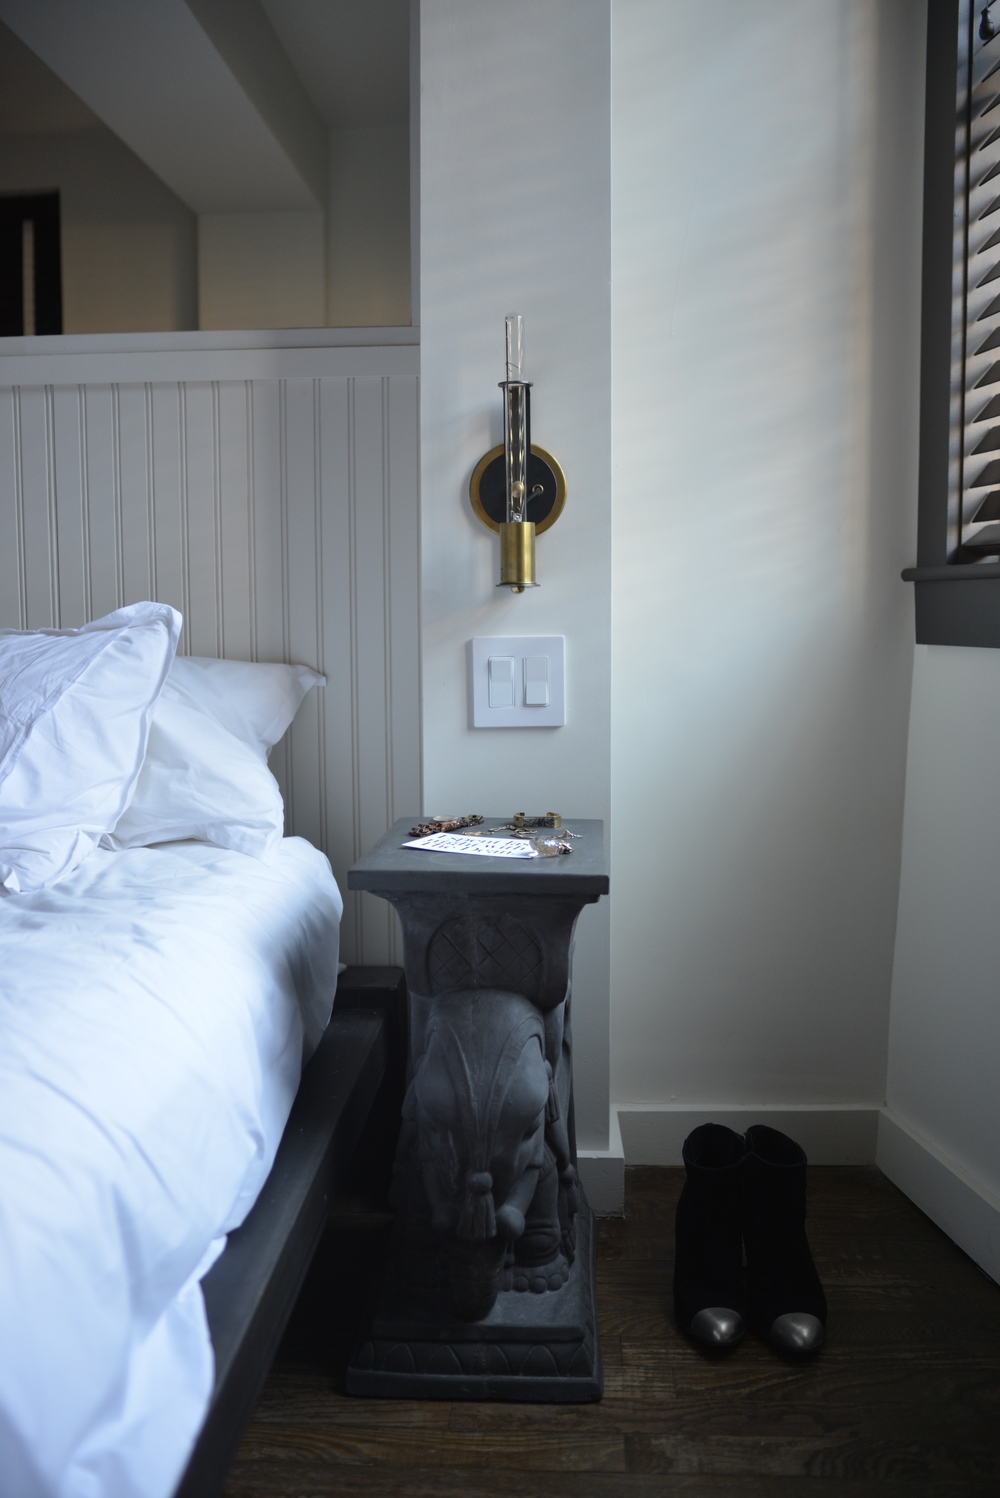 The Bedside Tables are Custom Designed Elephant Stands - Photograph by Lauren L Caron | The Dean Hotel